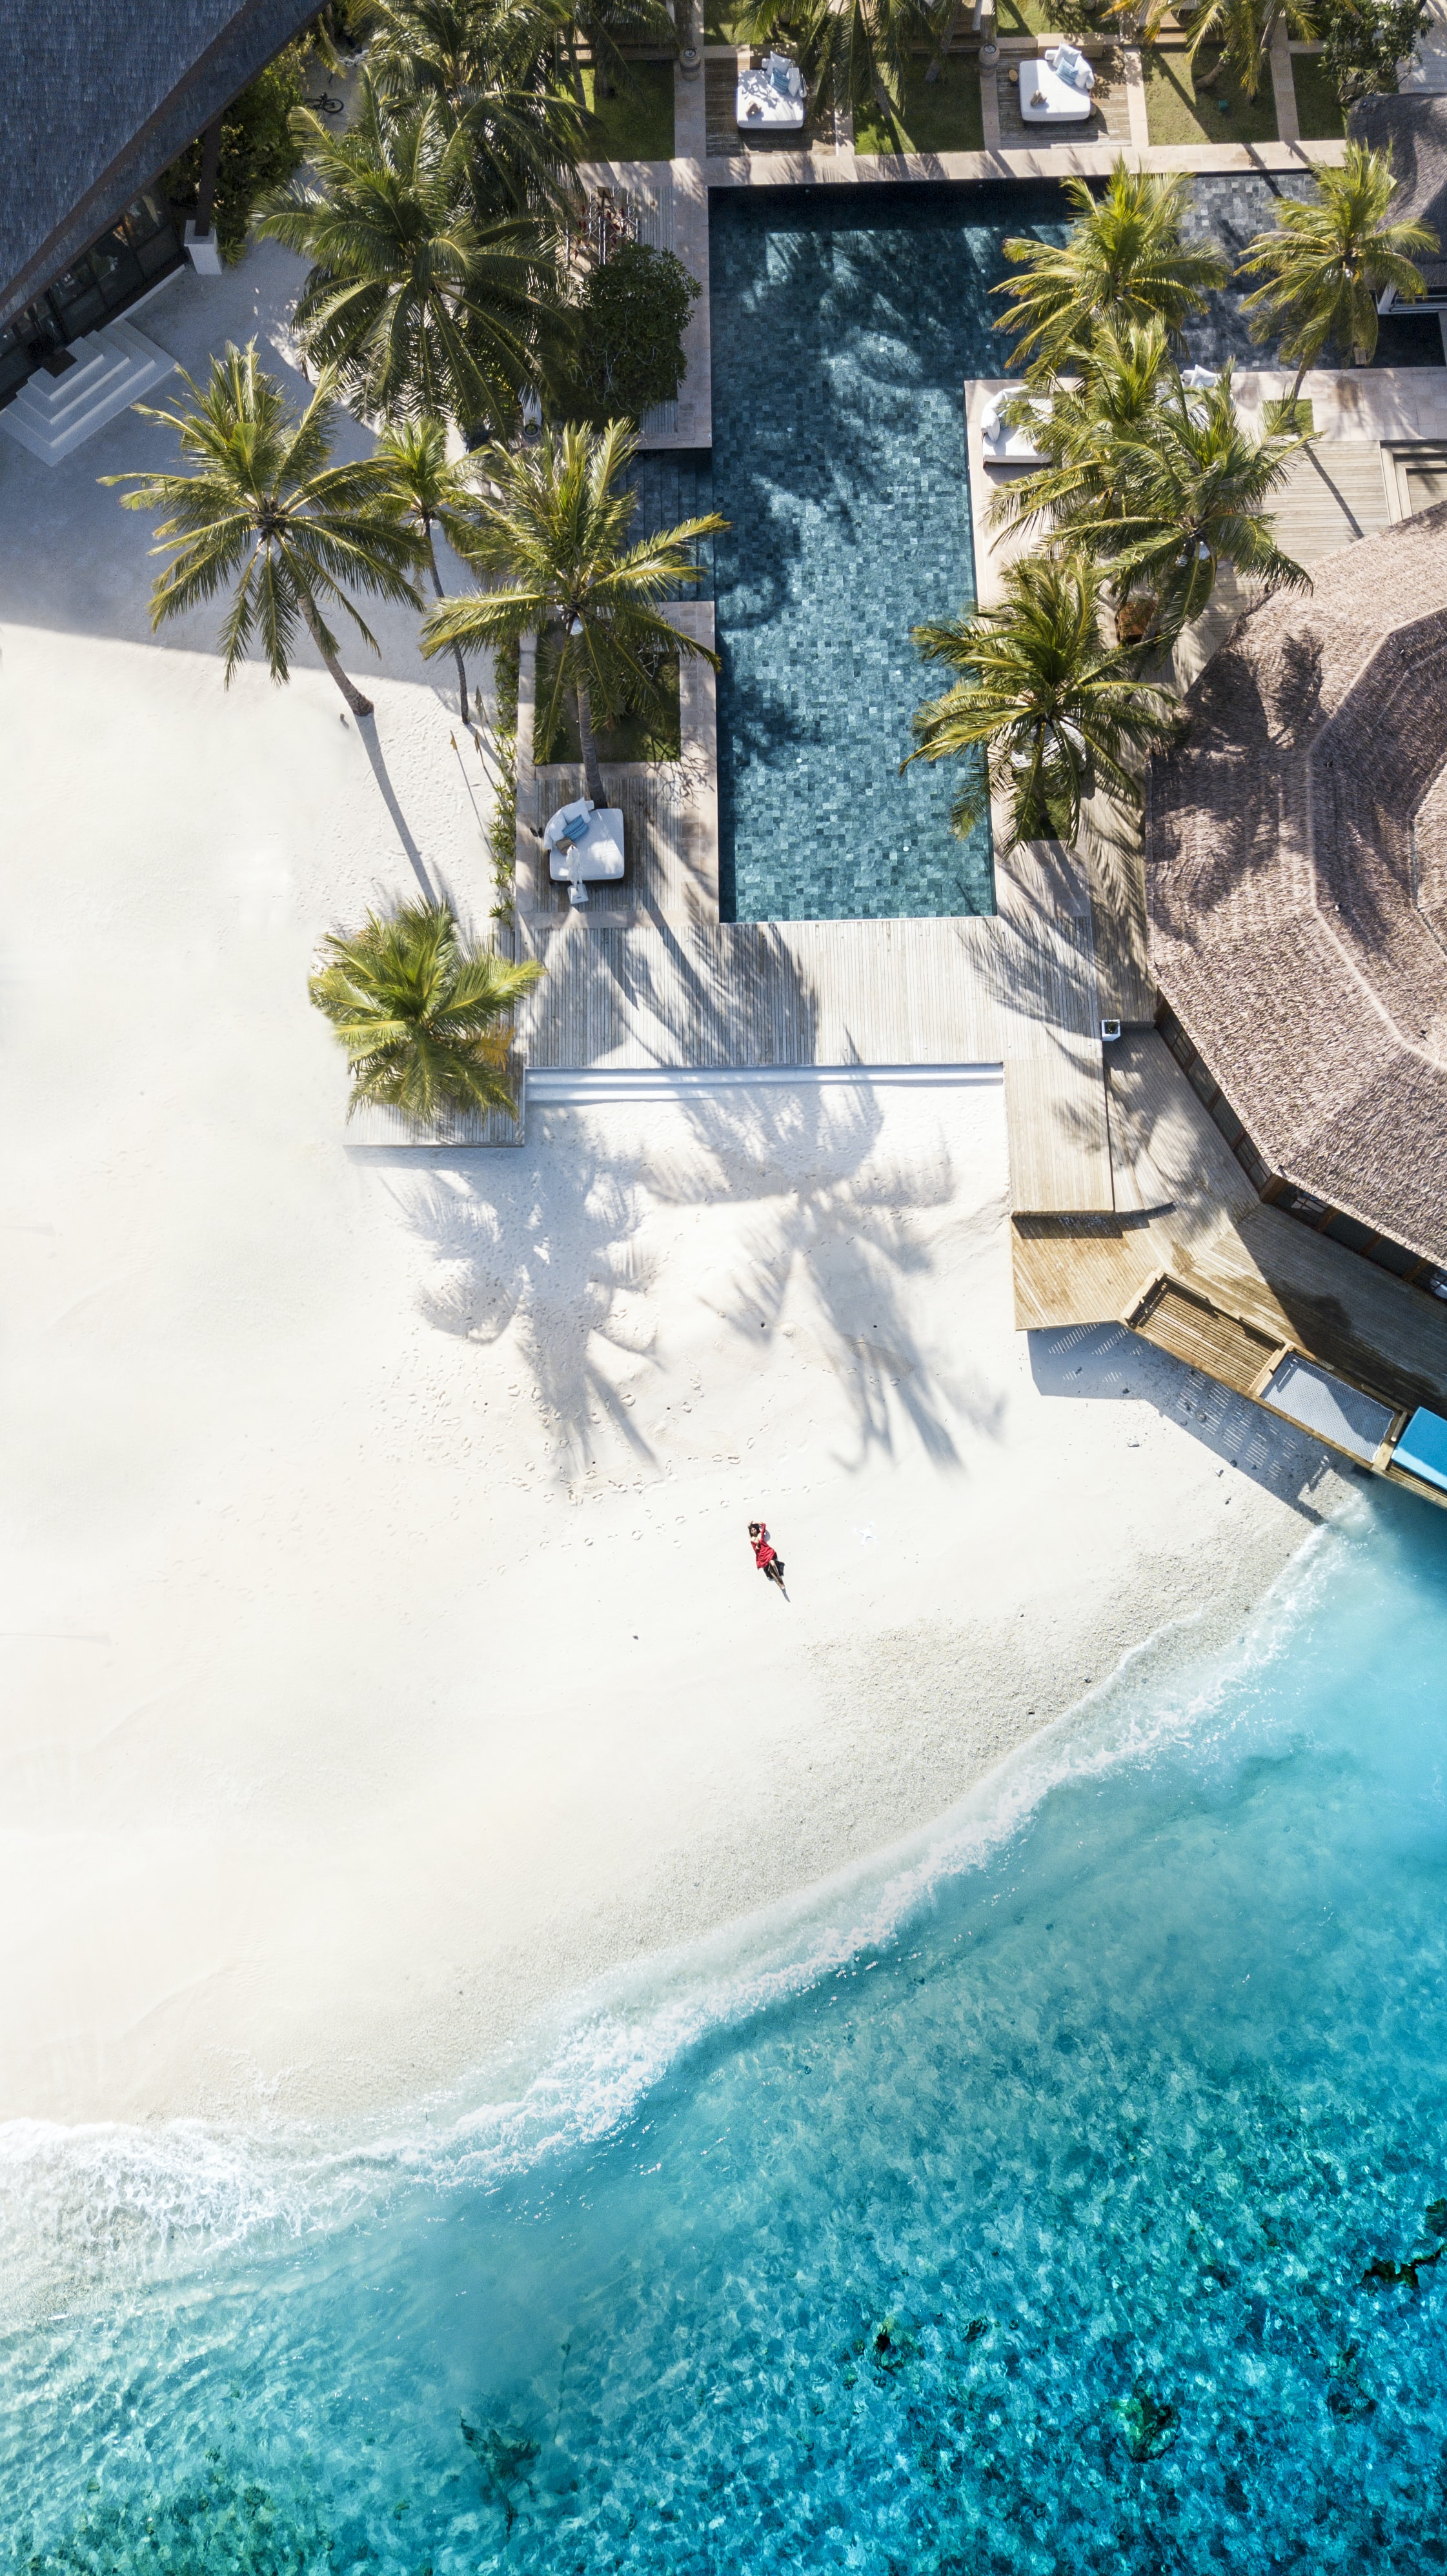 aerial view photography of seashore and pool